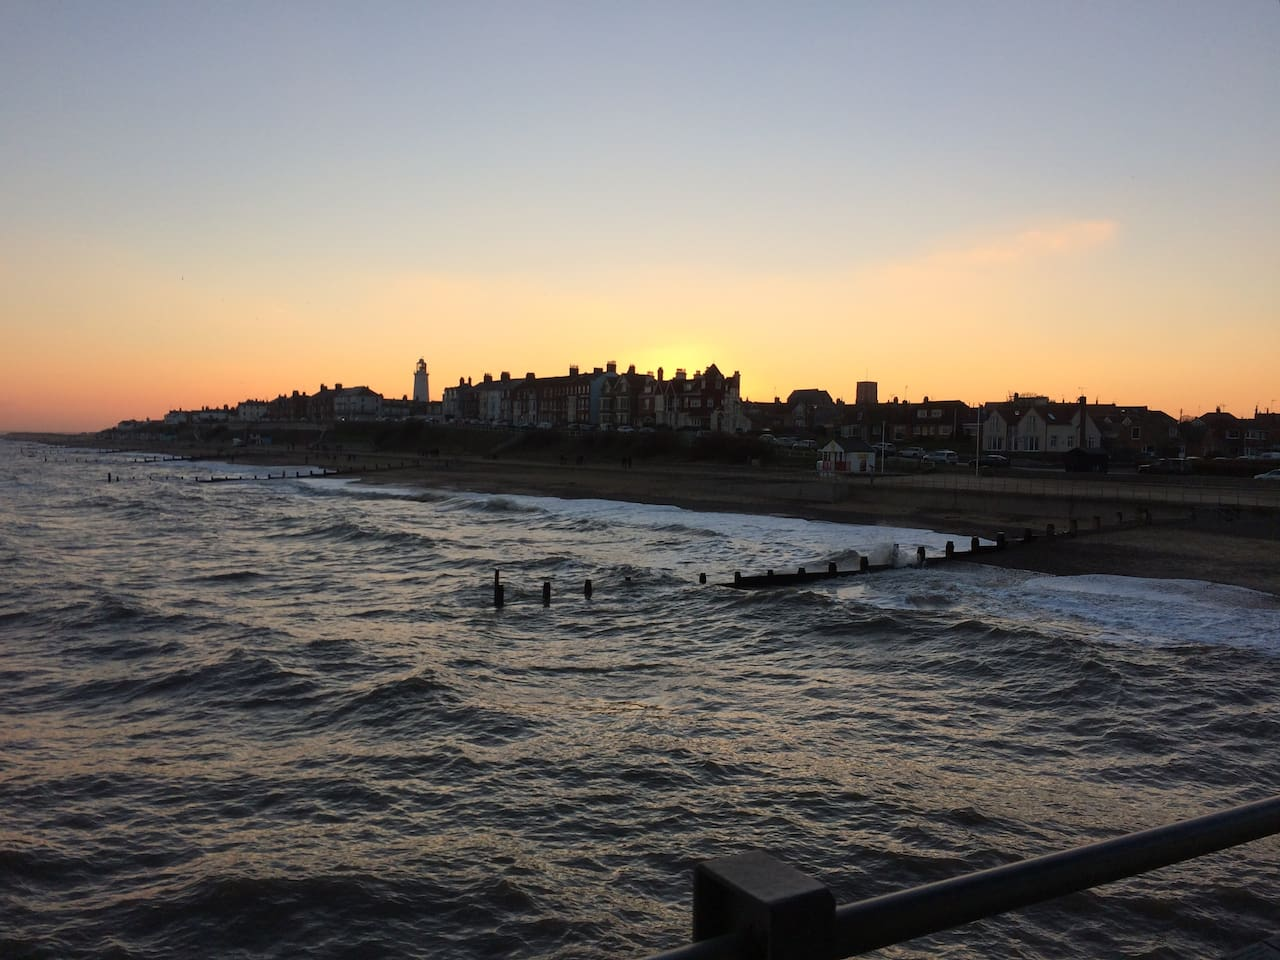 Southwold at sunset taken from the Pier